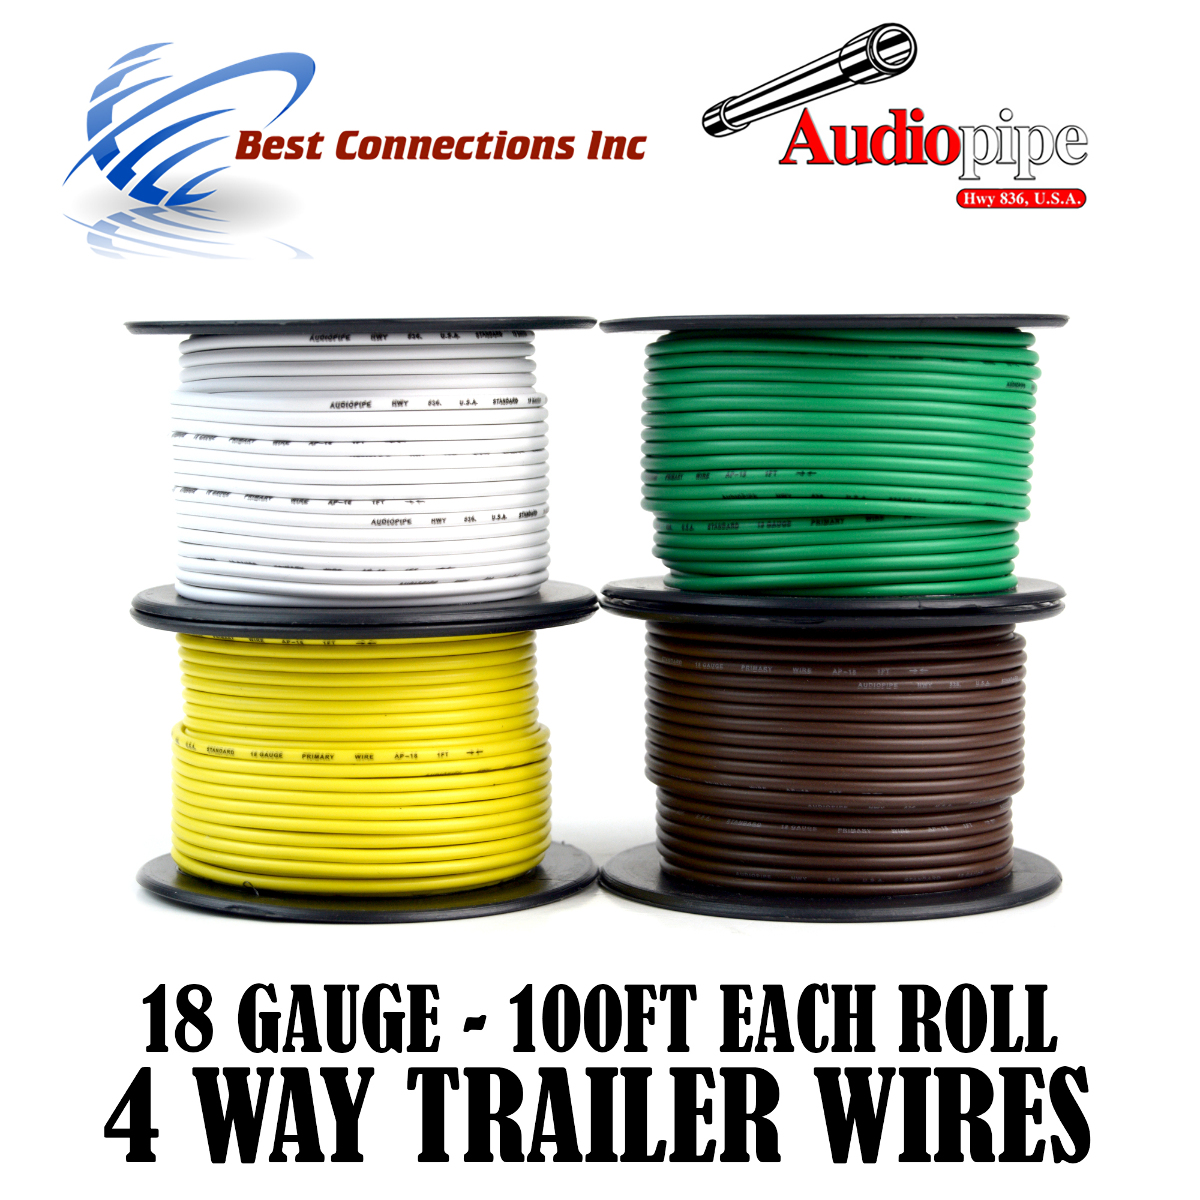 4 Wire Trailer Roll Browse Data Wiring Diagram Harness Way Light Cable For Led 100ft Each 18 5 Lights